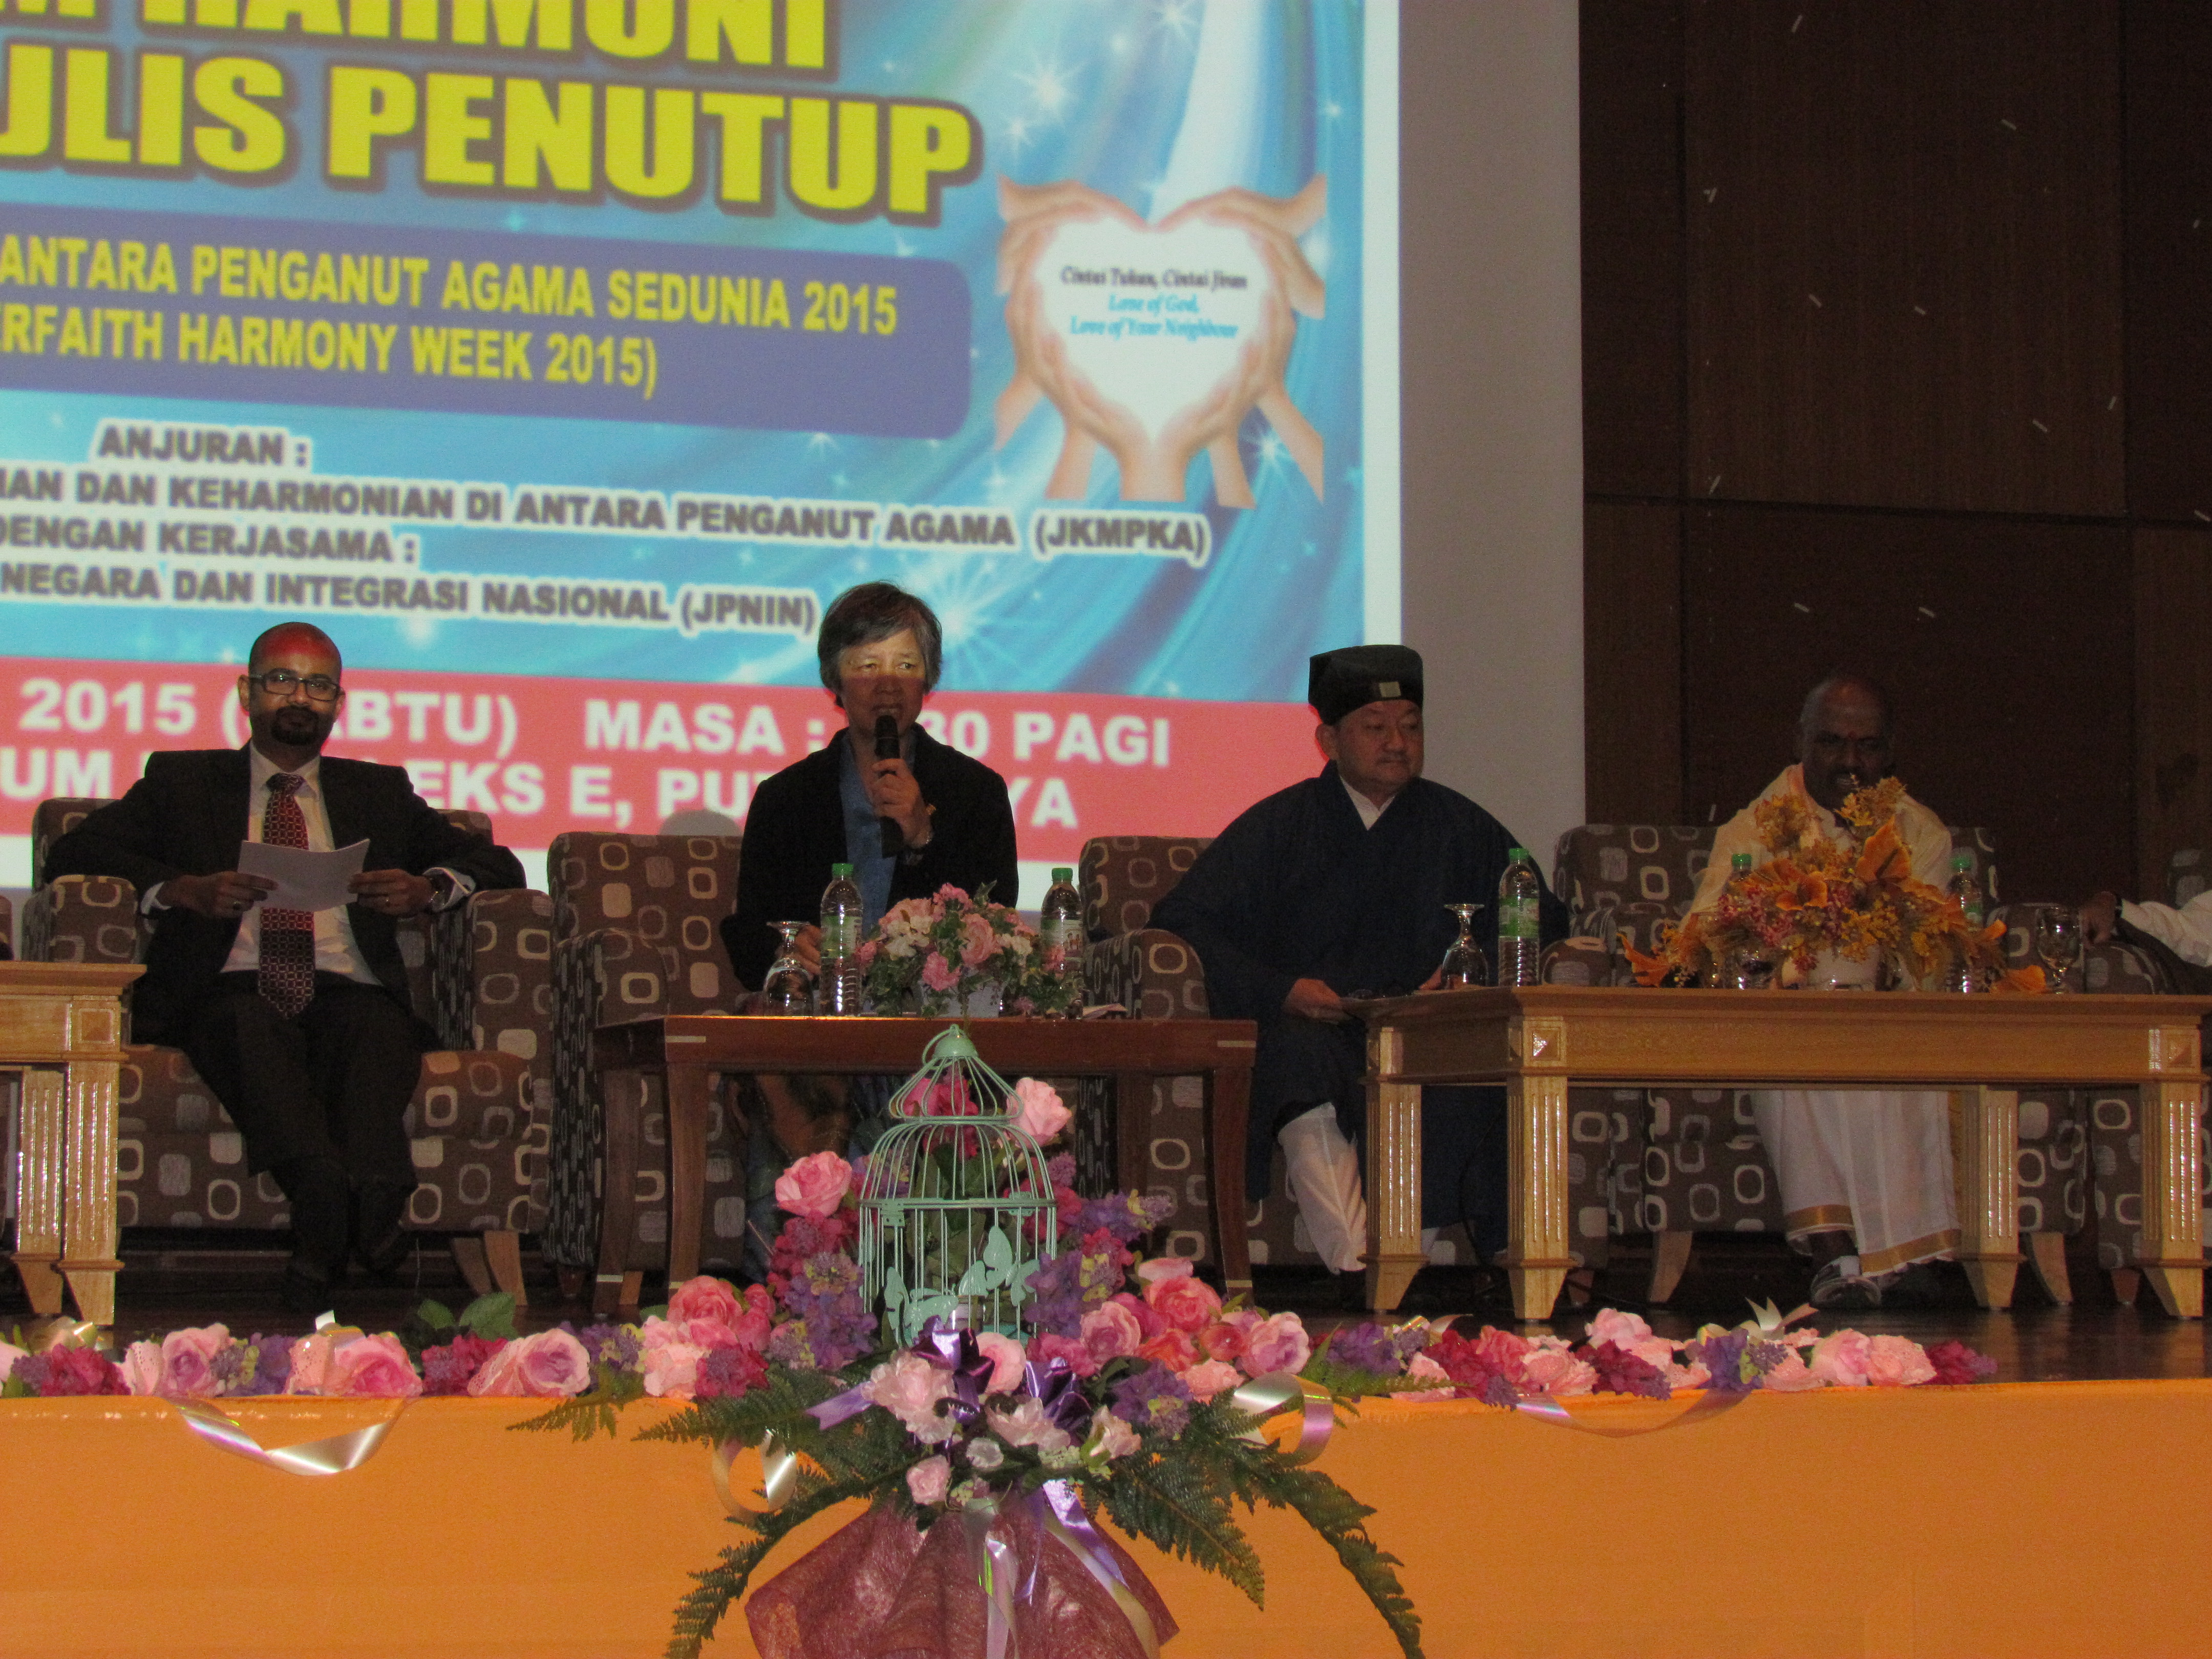 Speakers of various race and religion at Youth Interfaith Forum of WIHW 2015 in Putra Jaya.JPG